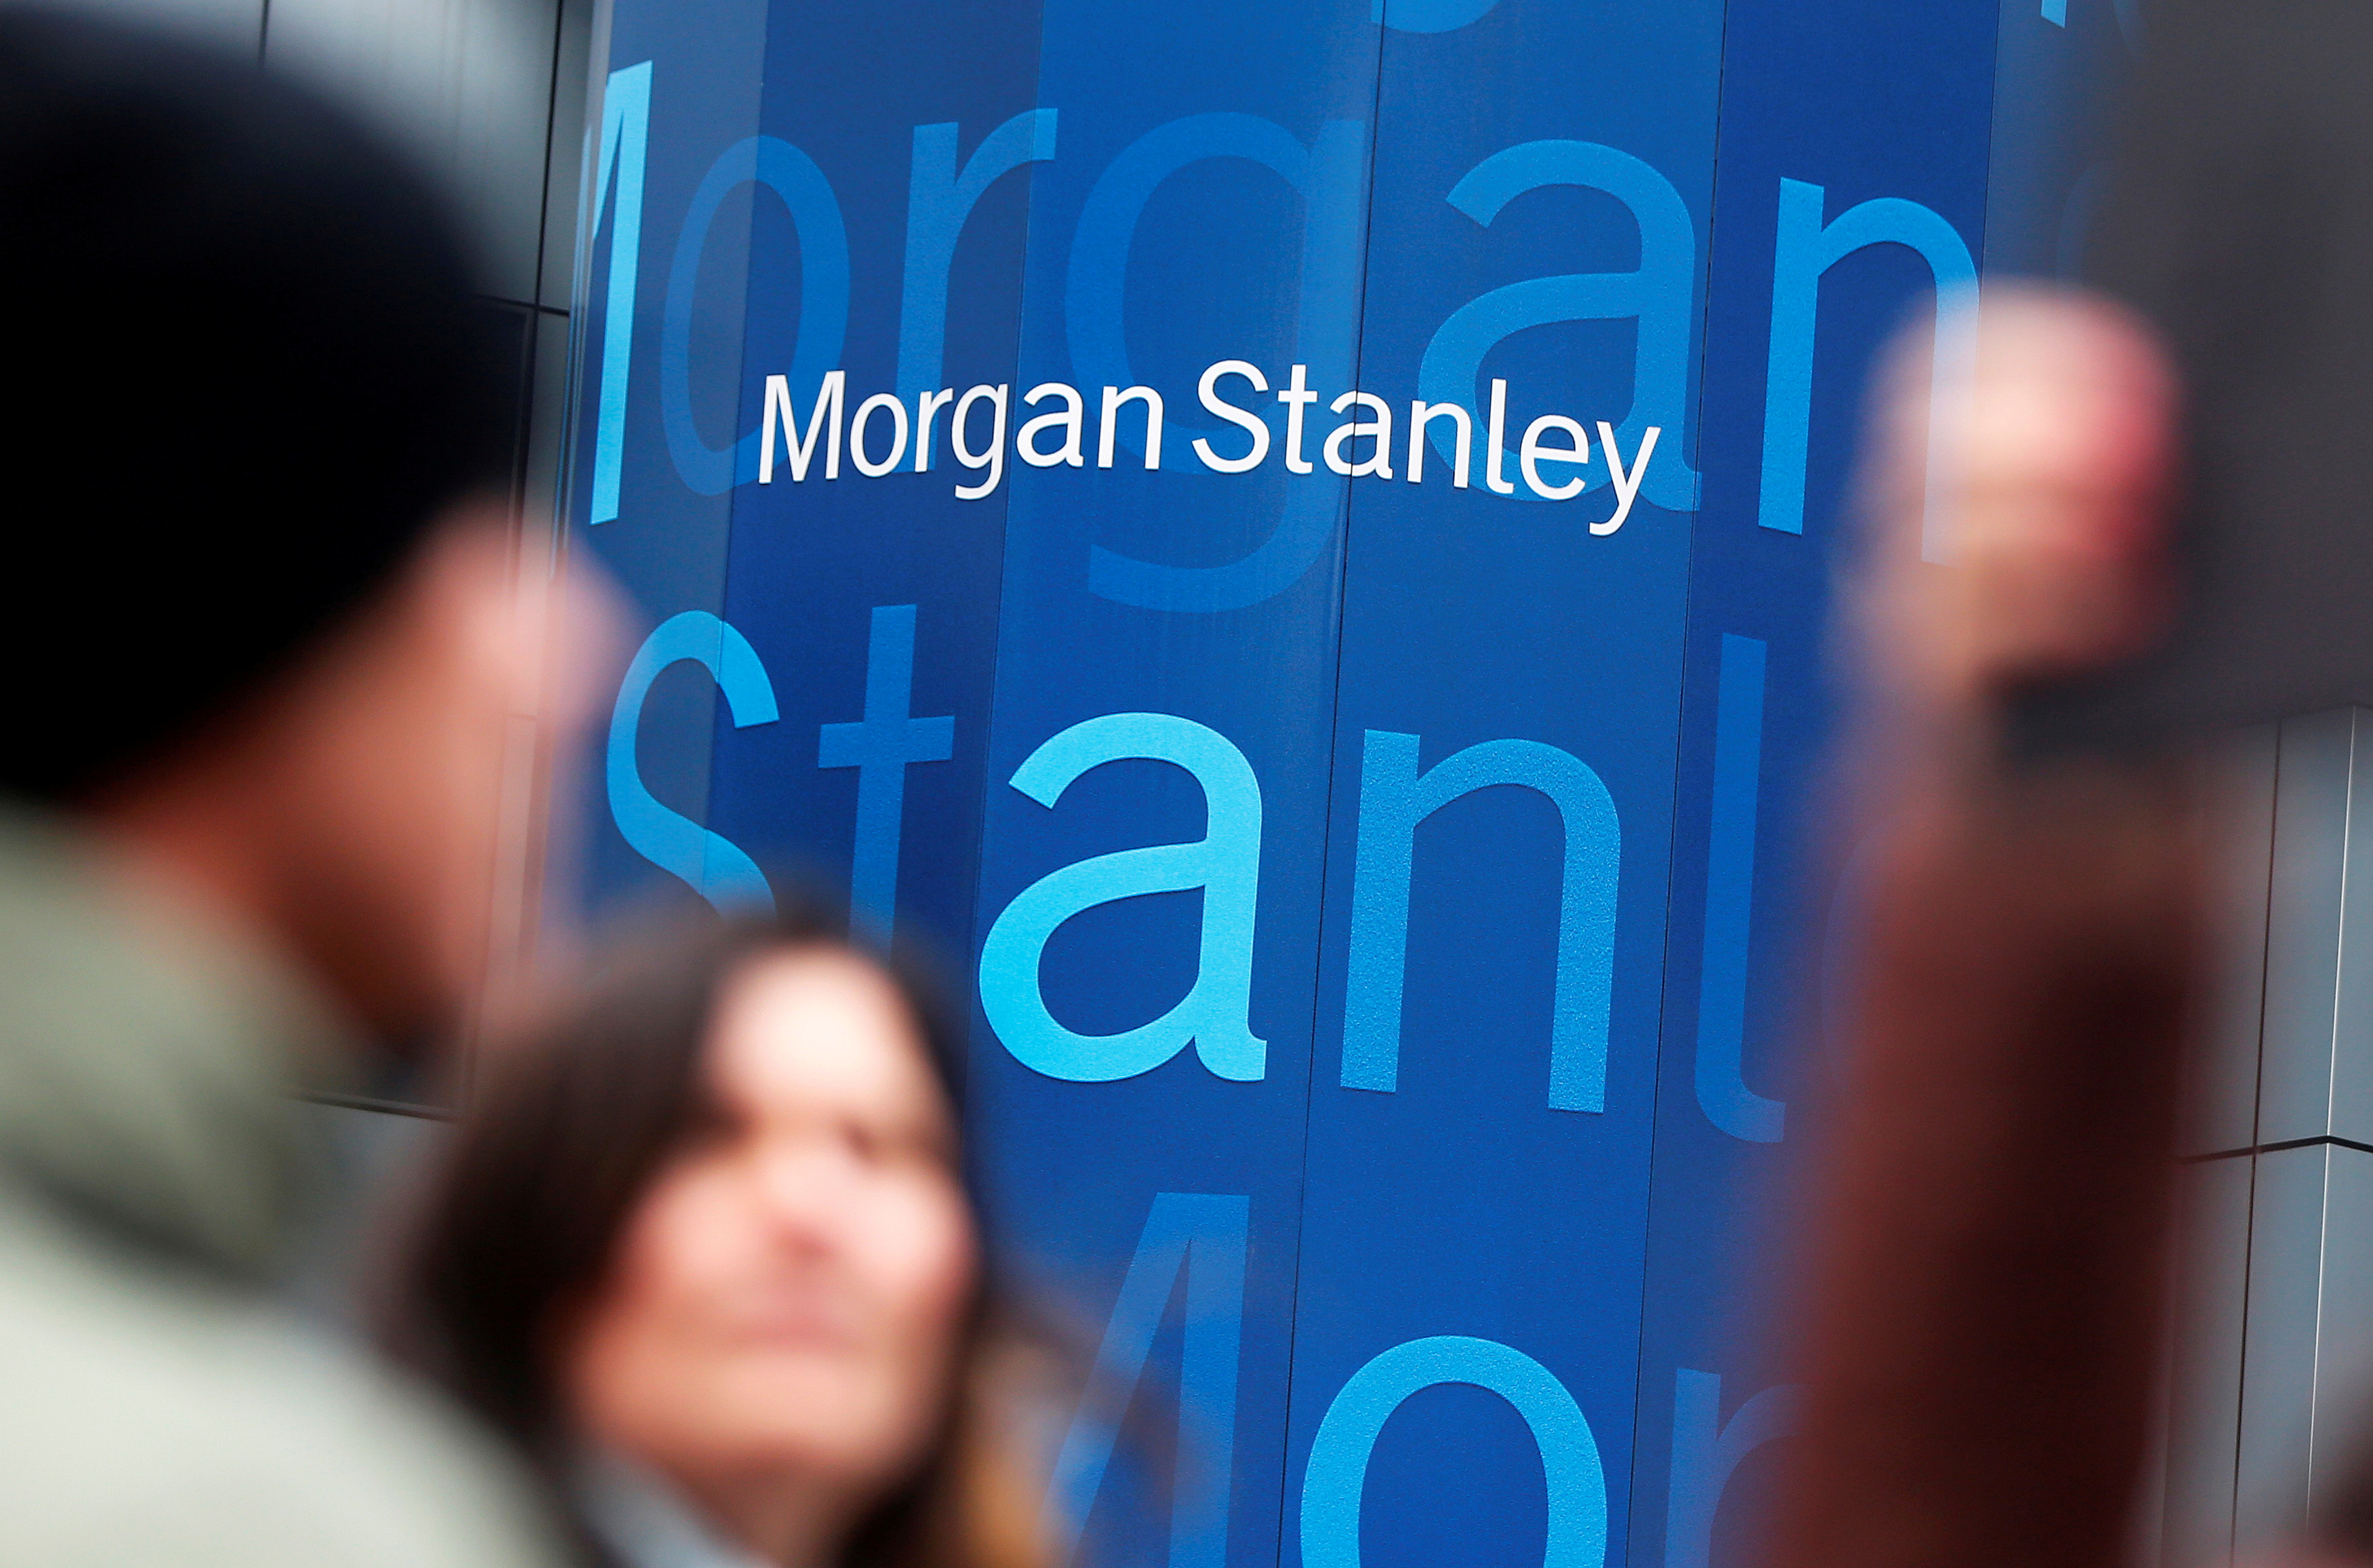 The headquarters of Morgan Stanley is seen in New York January 9, 2013. REUTERS/Shannon Stapleton/File Photo